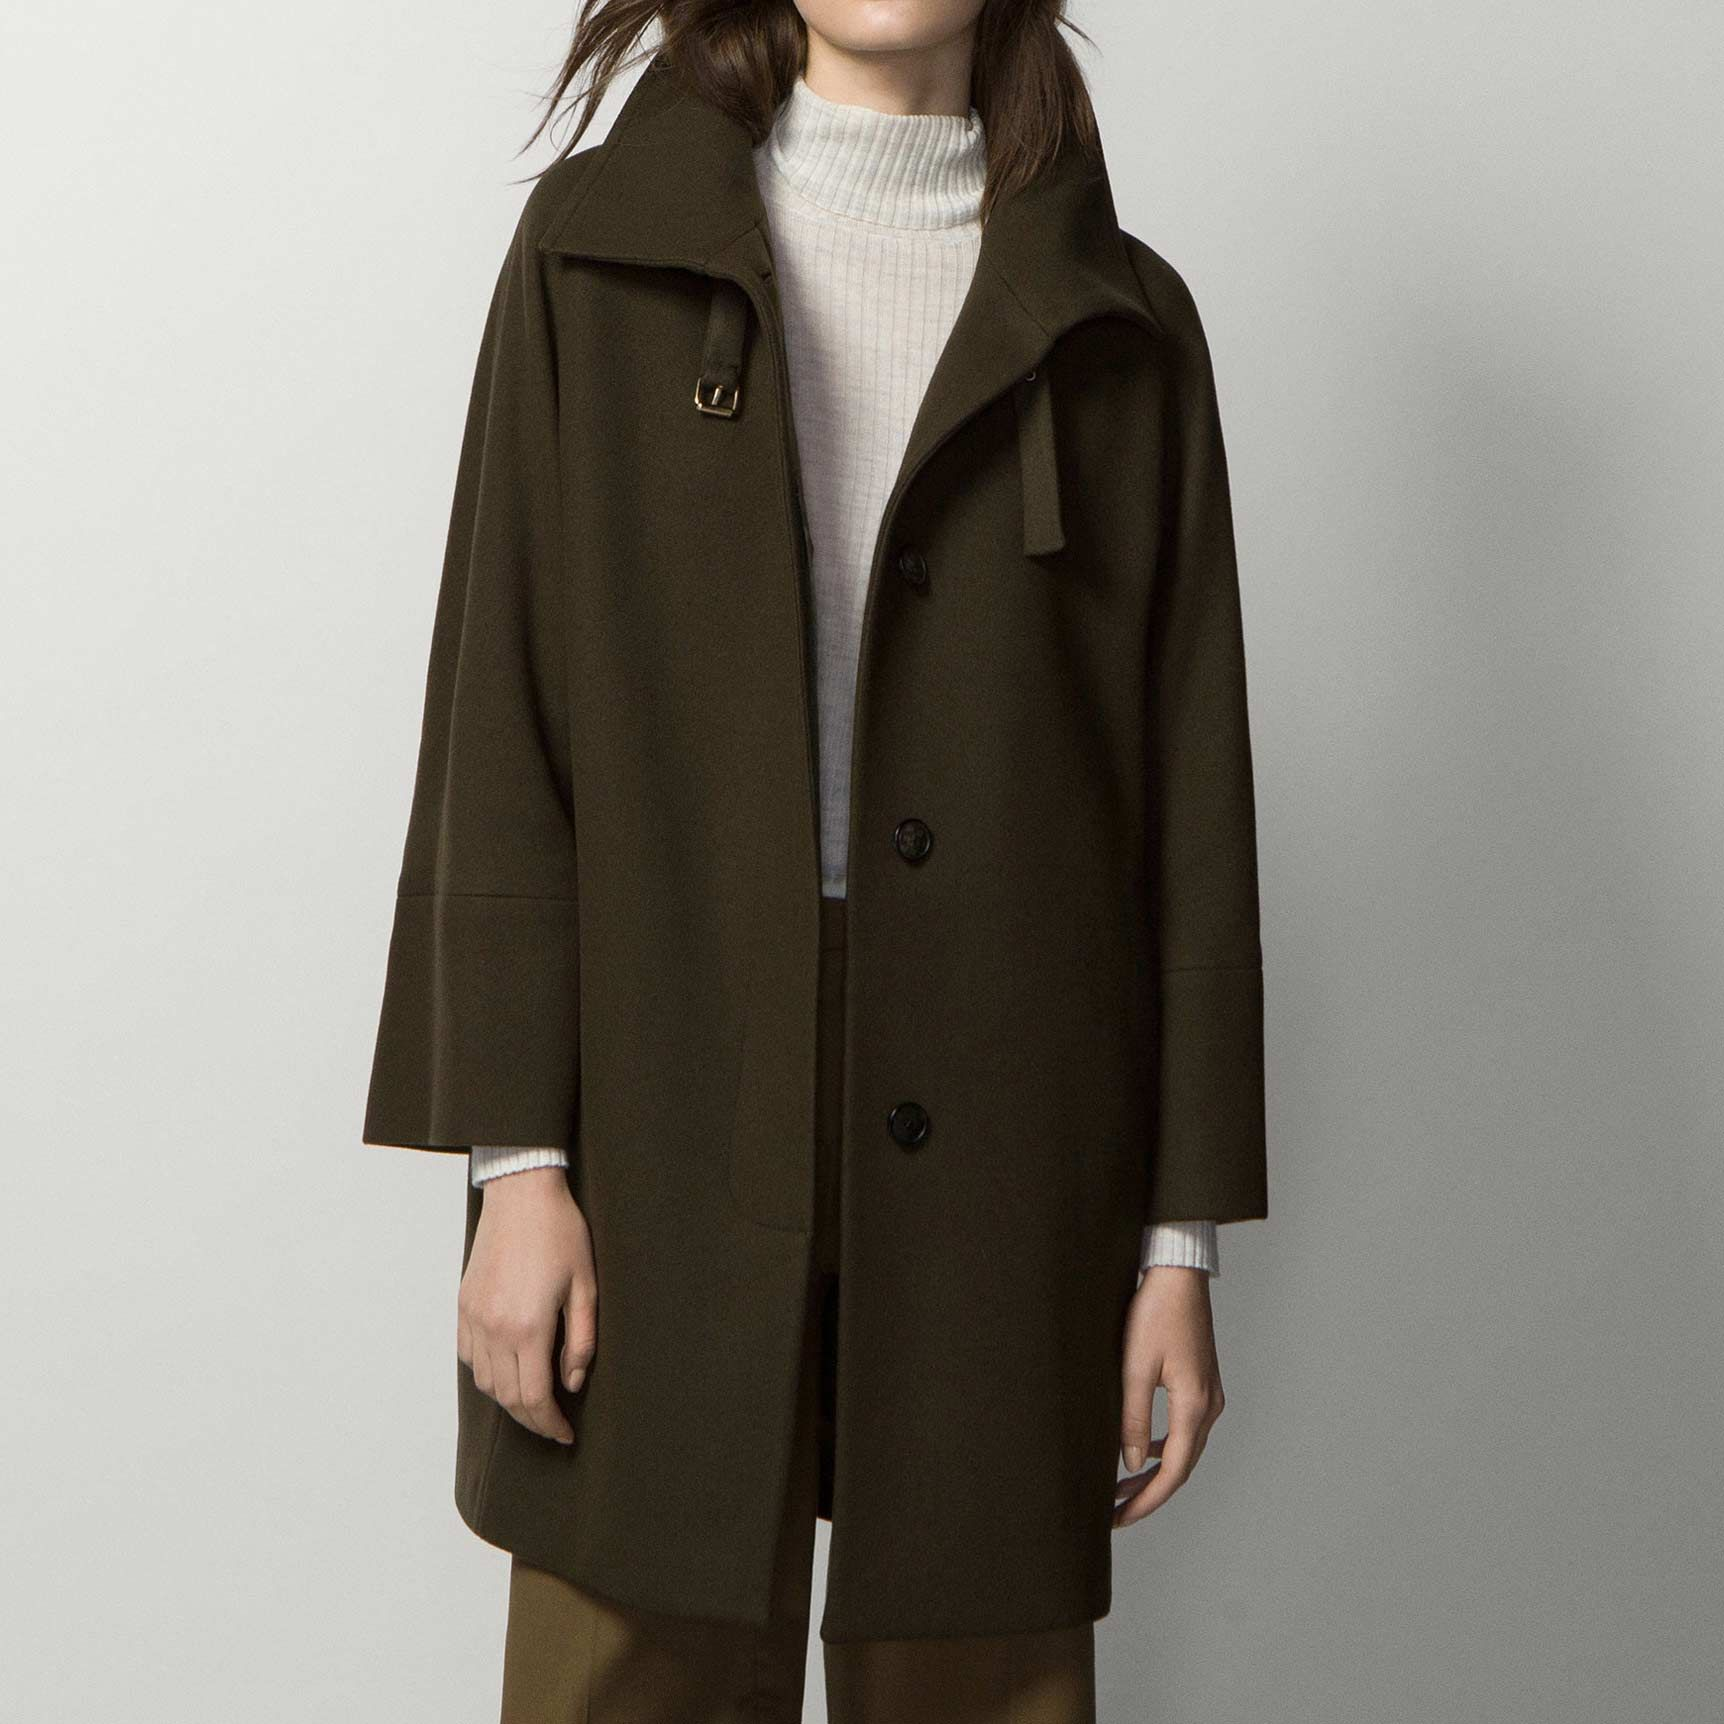 5cf2c9ac The Pool | Fashion - The big winter coat edit gallery | Coats to ...